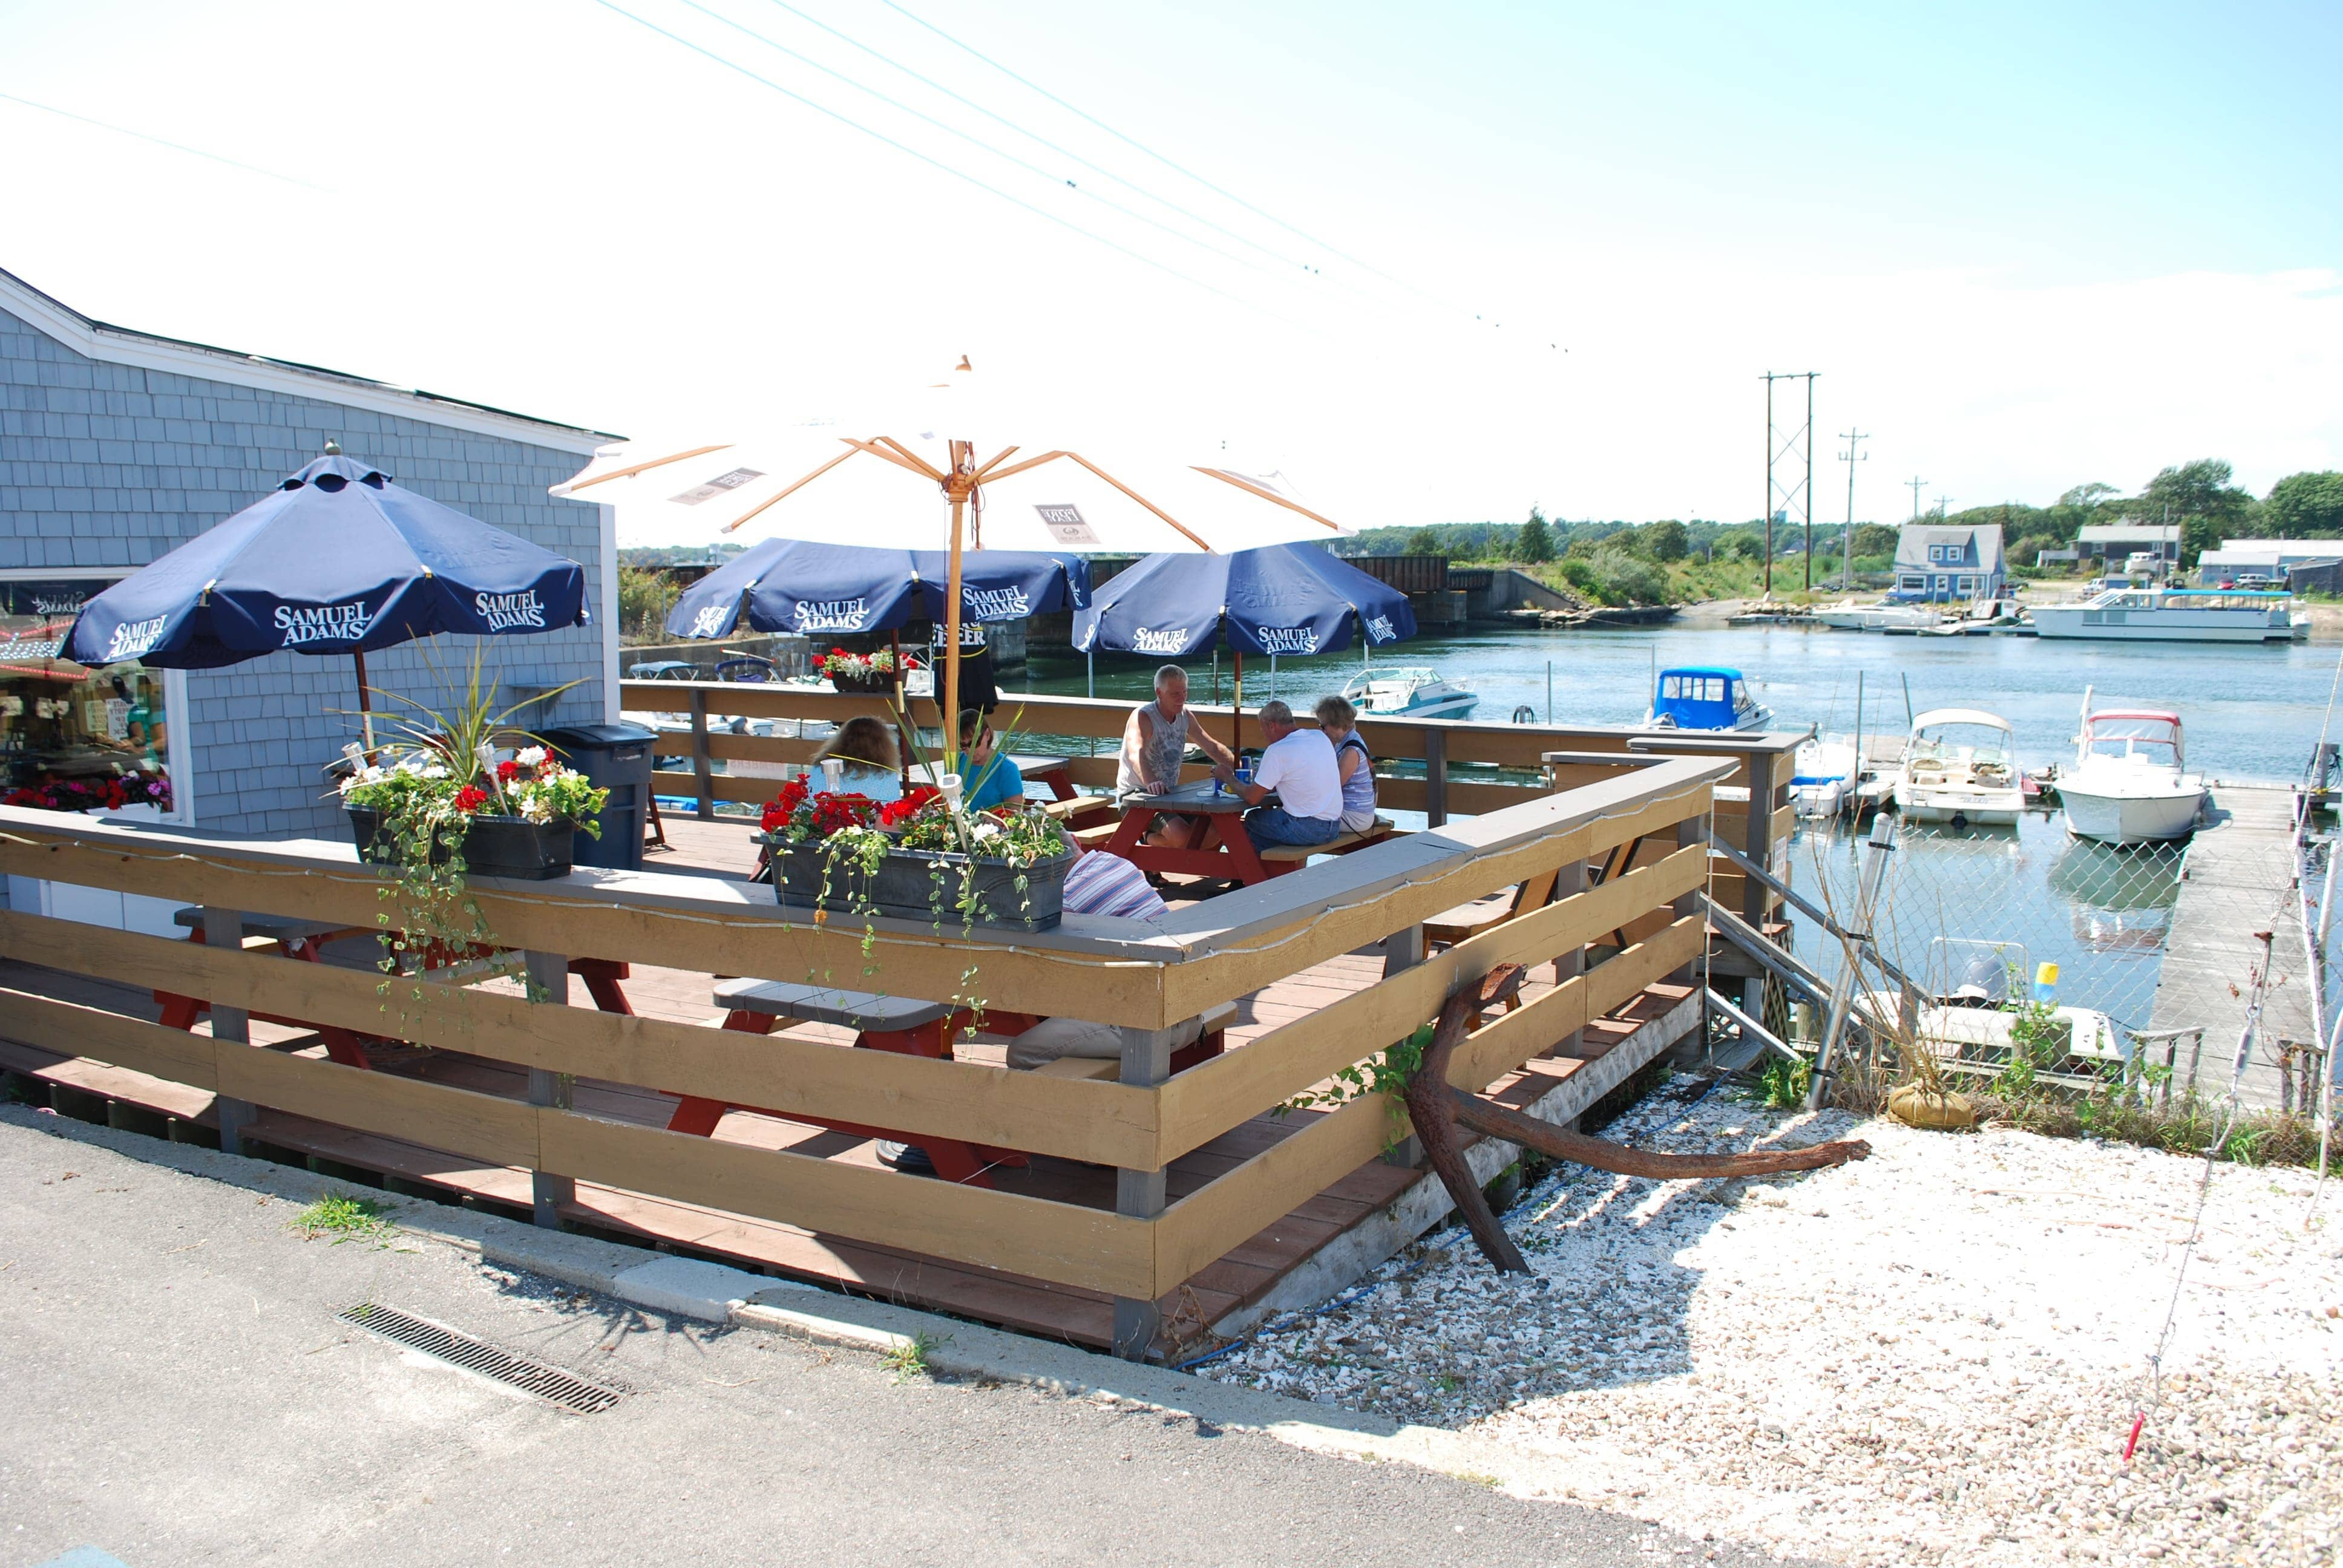 East Wind Lobster and Grille, Buzzards Bay Marina, Massachusetts